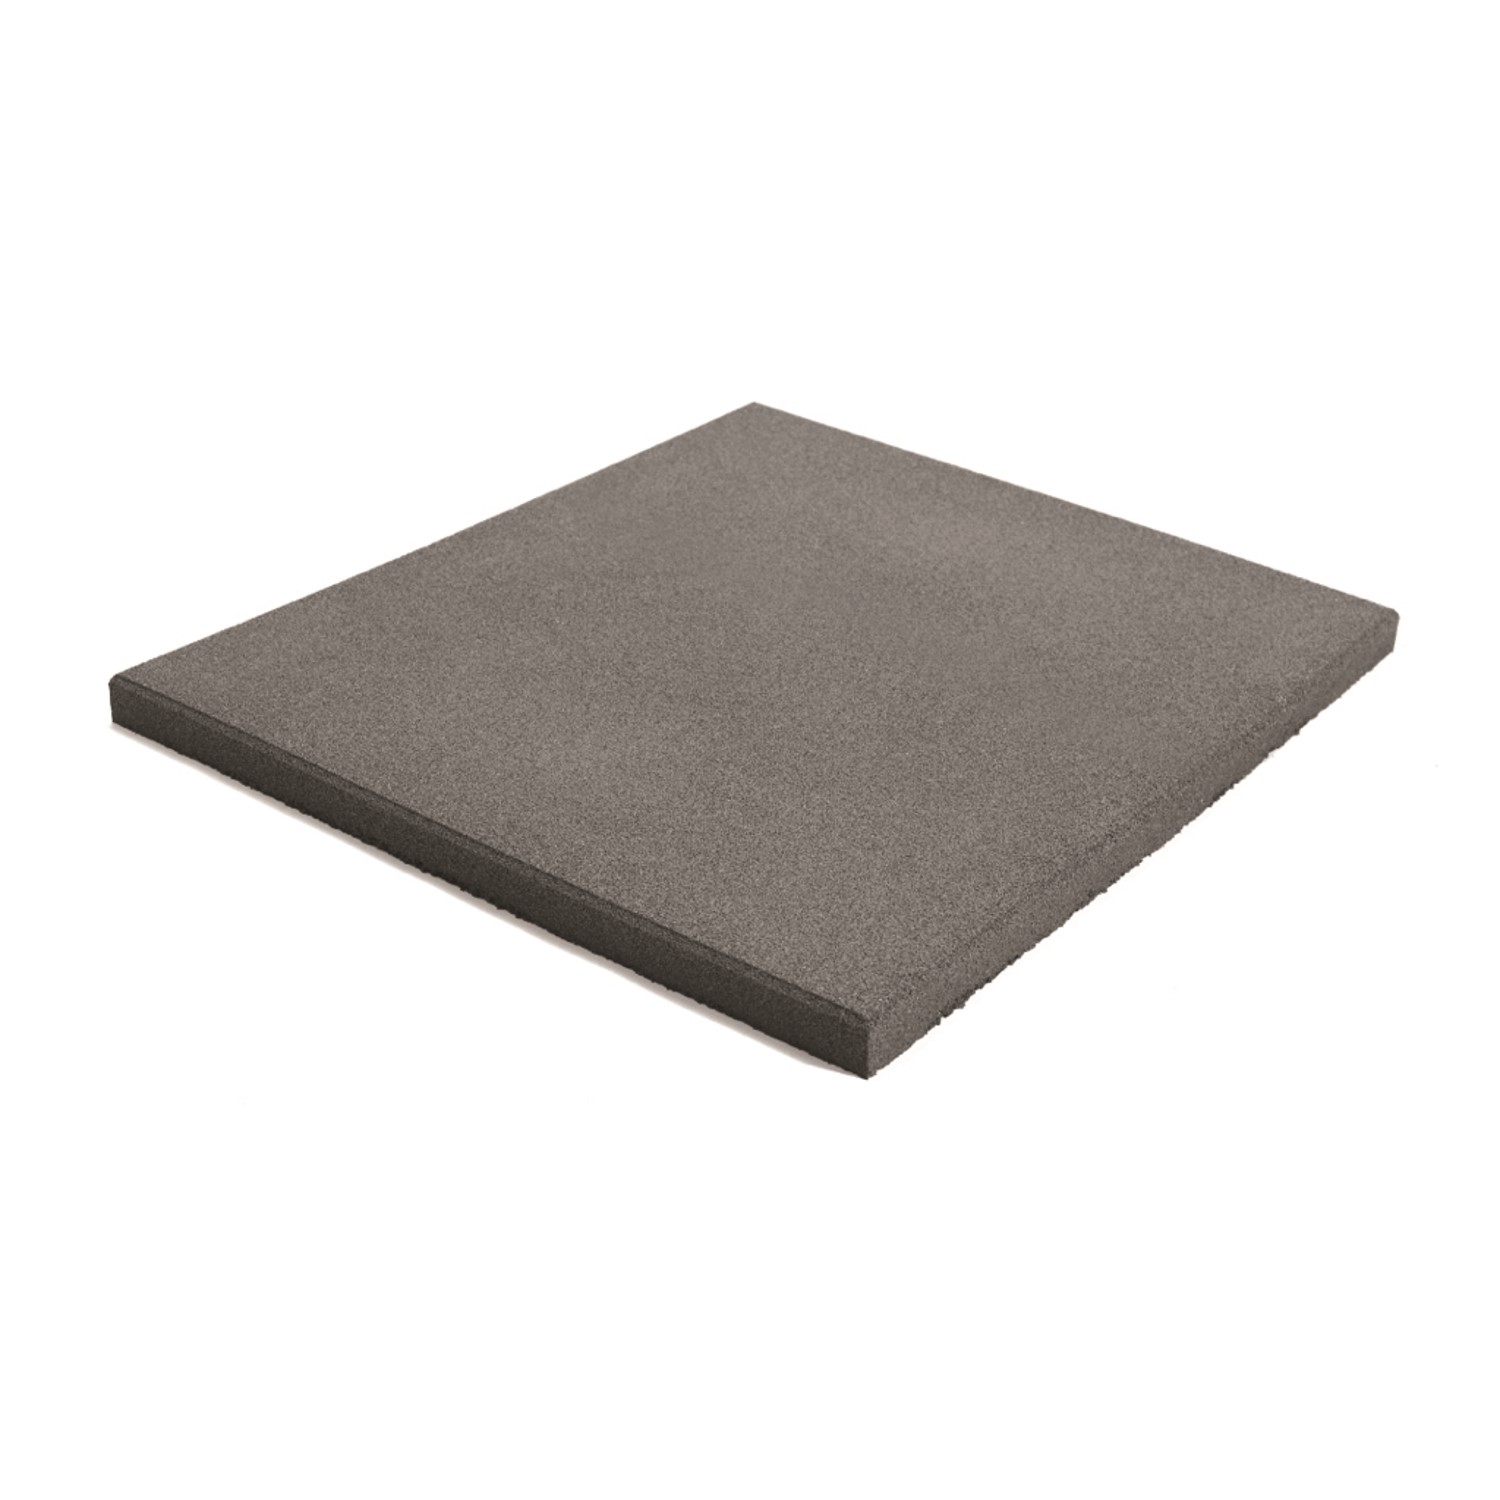 Jordan Activ Flooring (15mm) - Grey Corner